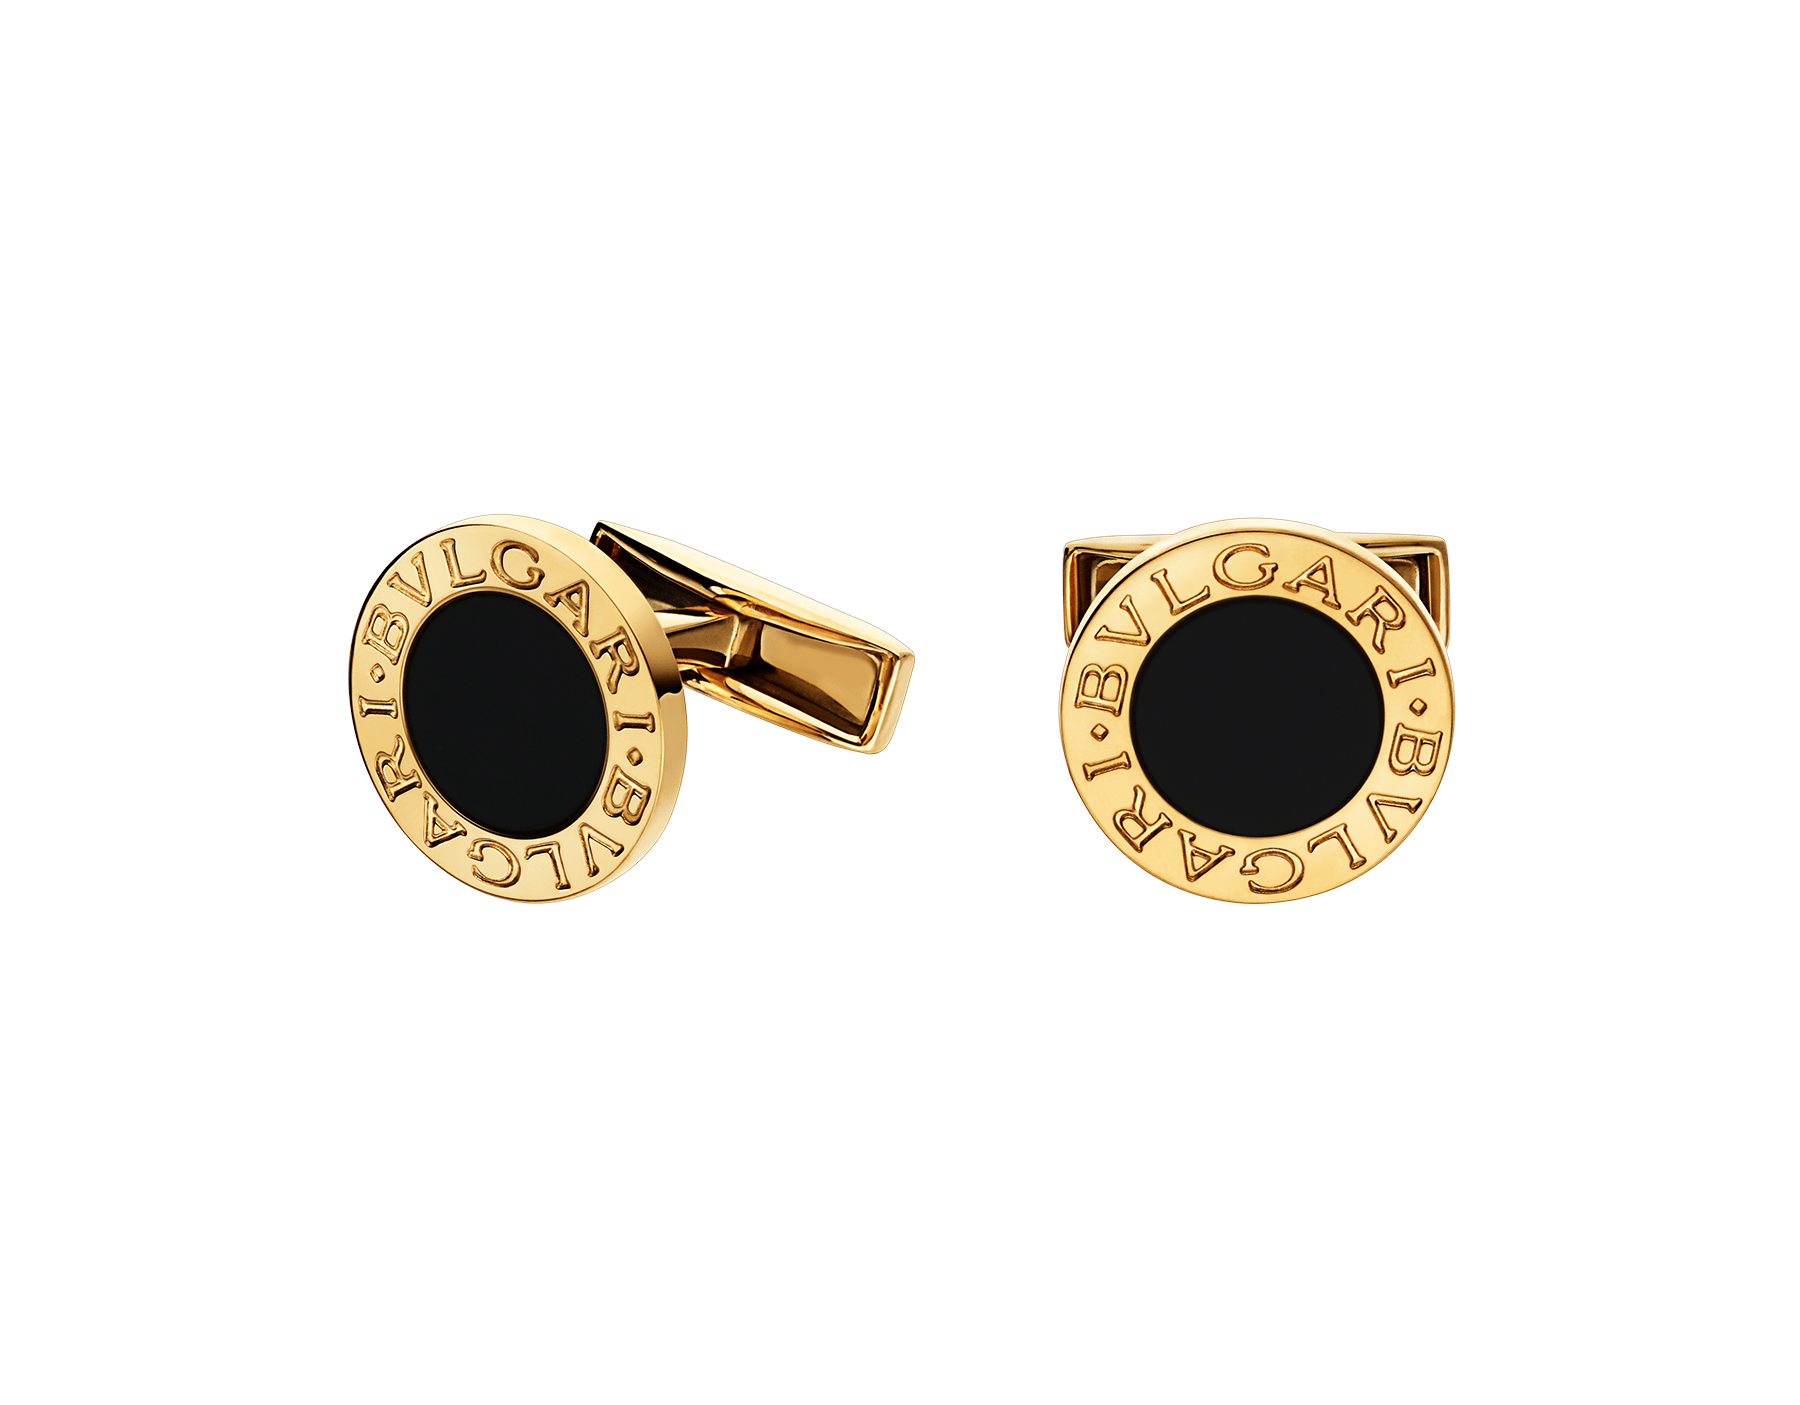 BVLGARI BVLGARI 18kt yellow gold cufflinks set with black onyx elements 322302 image 1